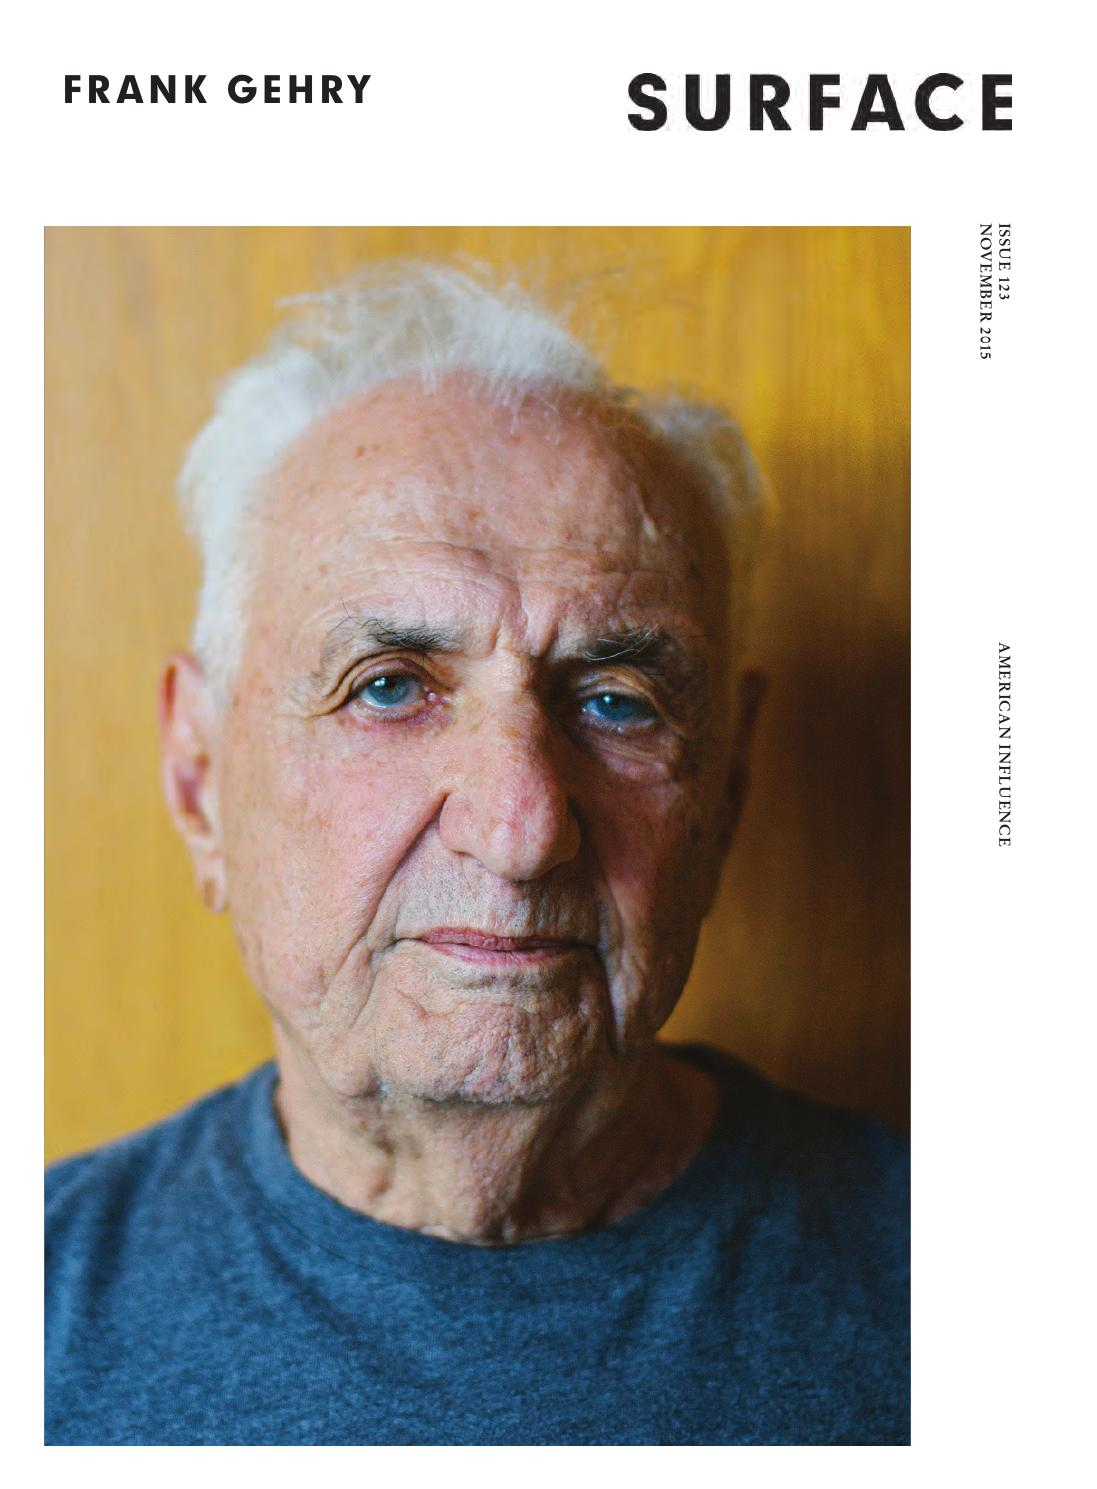 Frank Gehry Chaise Carton surface - frank gehry - november 2015surfacemag - issuu